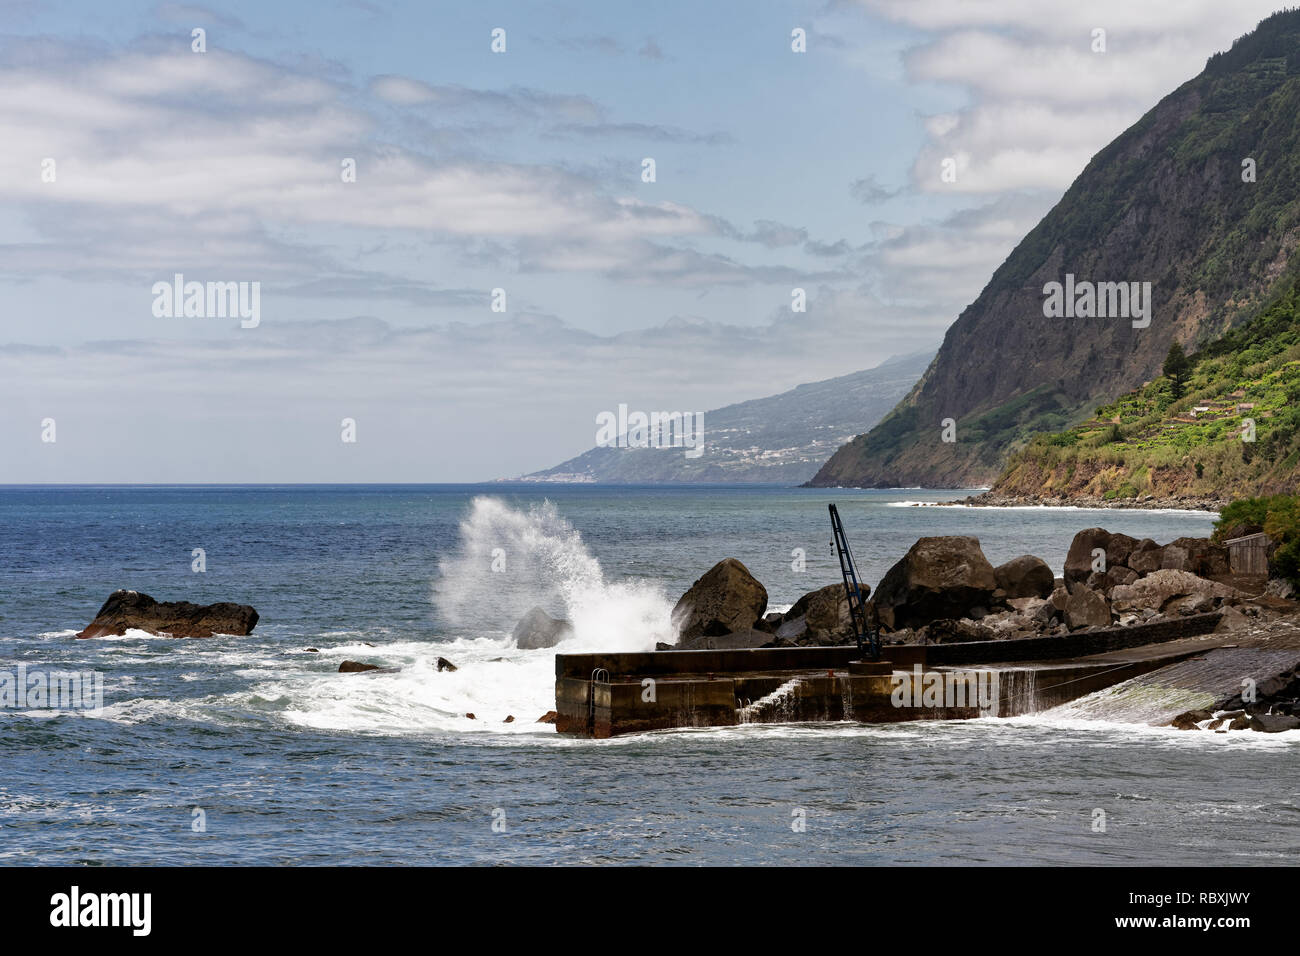 High wave branded in stormy weather at a small pier of the Azores island Sao Jorge, view along the coast - Location: Azores, island of Sao Jorge - Stock Image